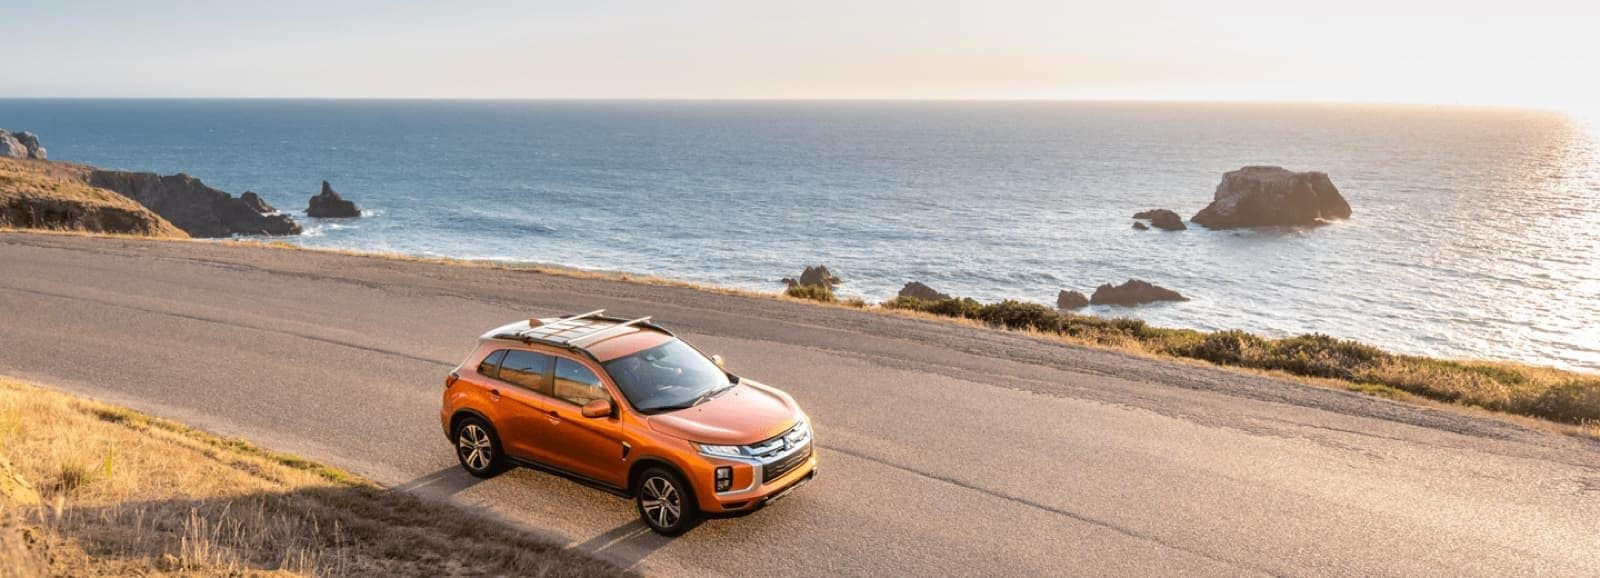 orange outlander on the beach